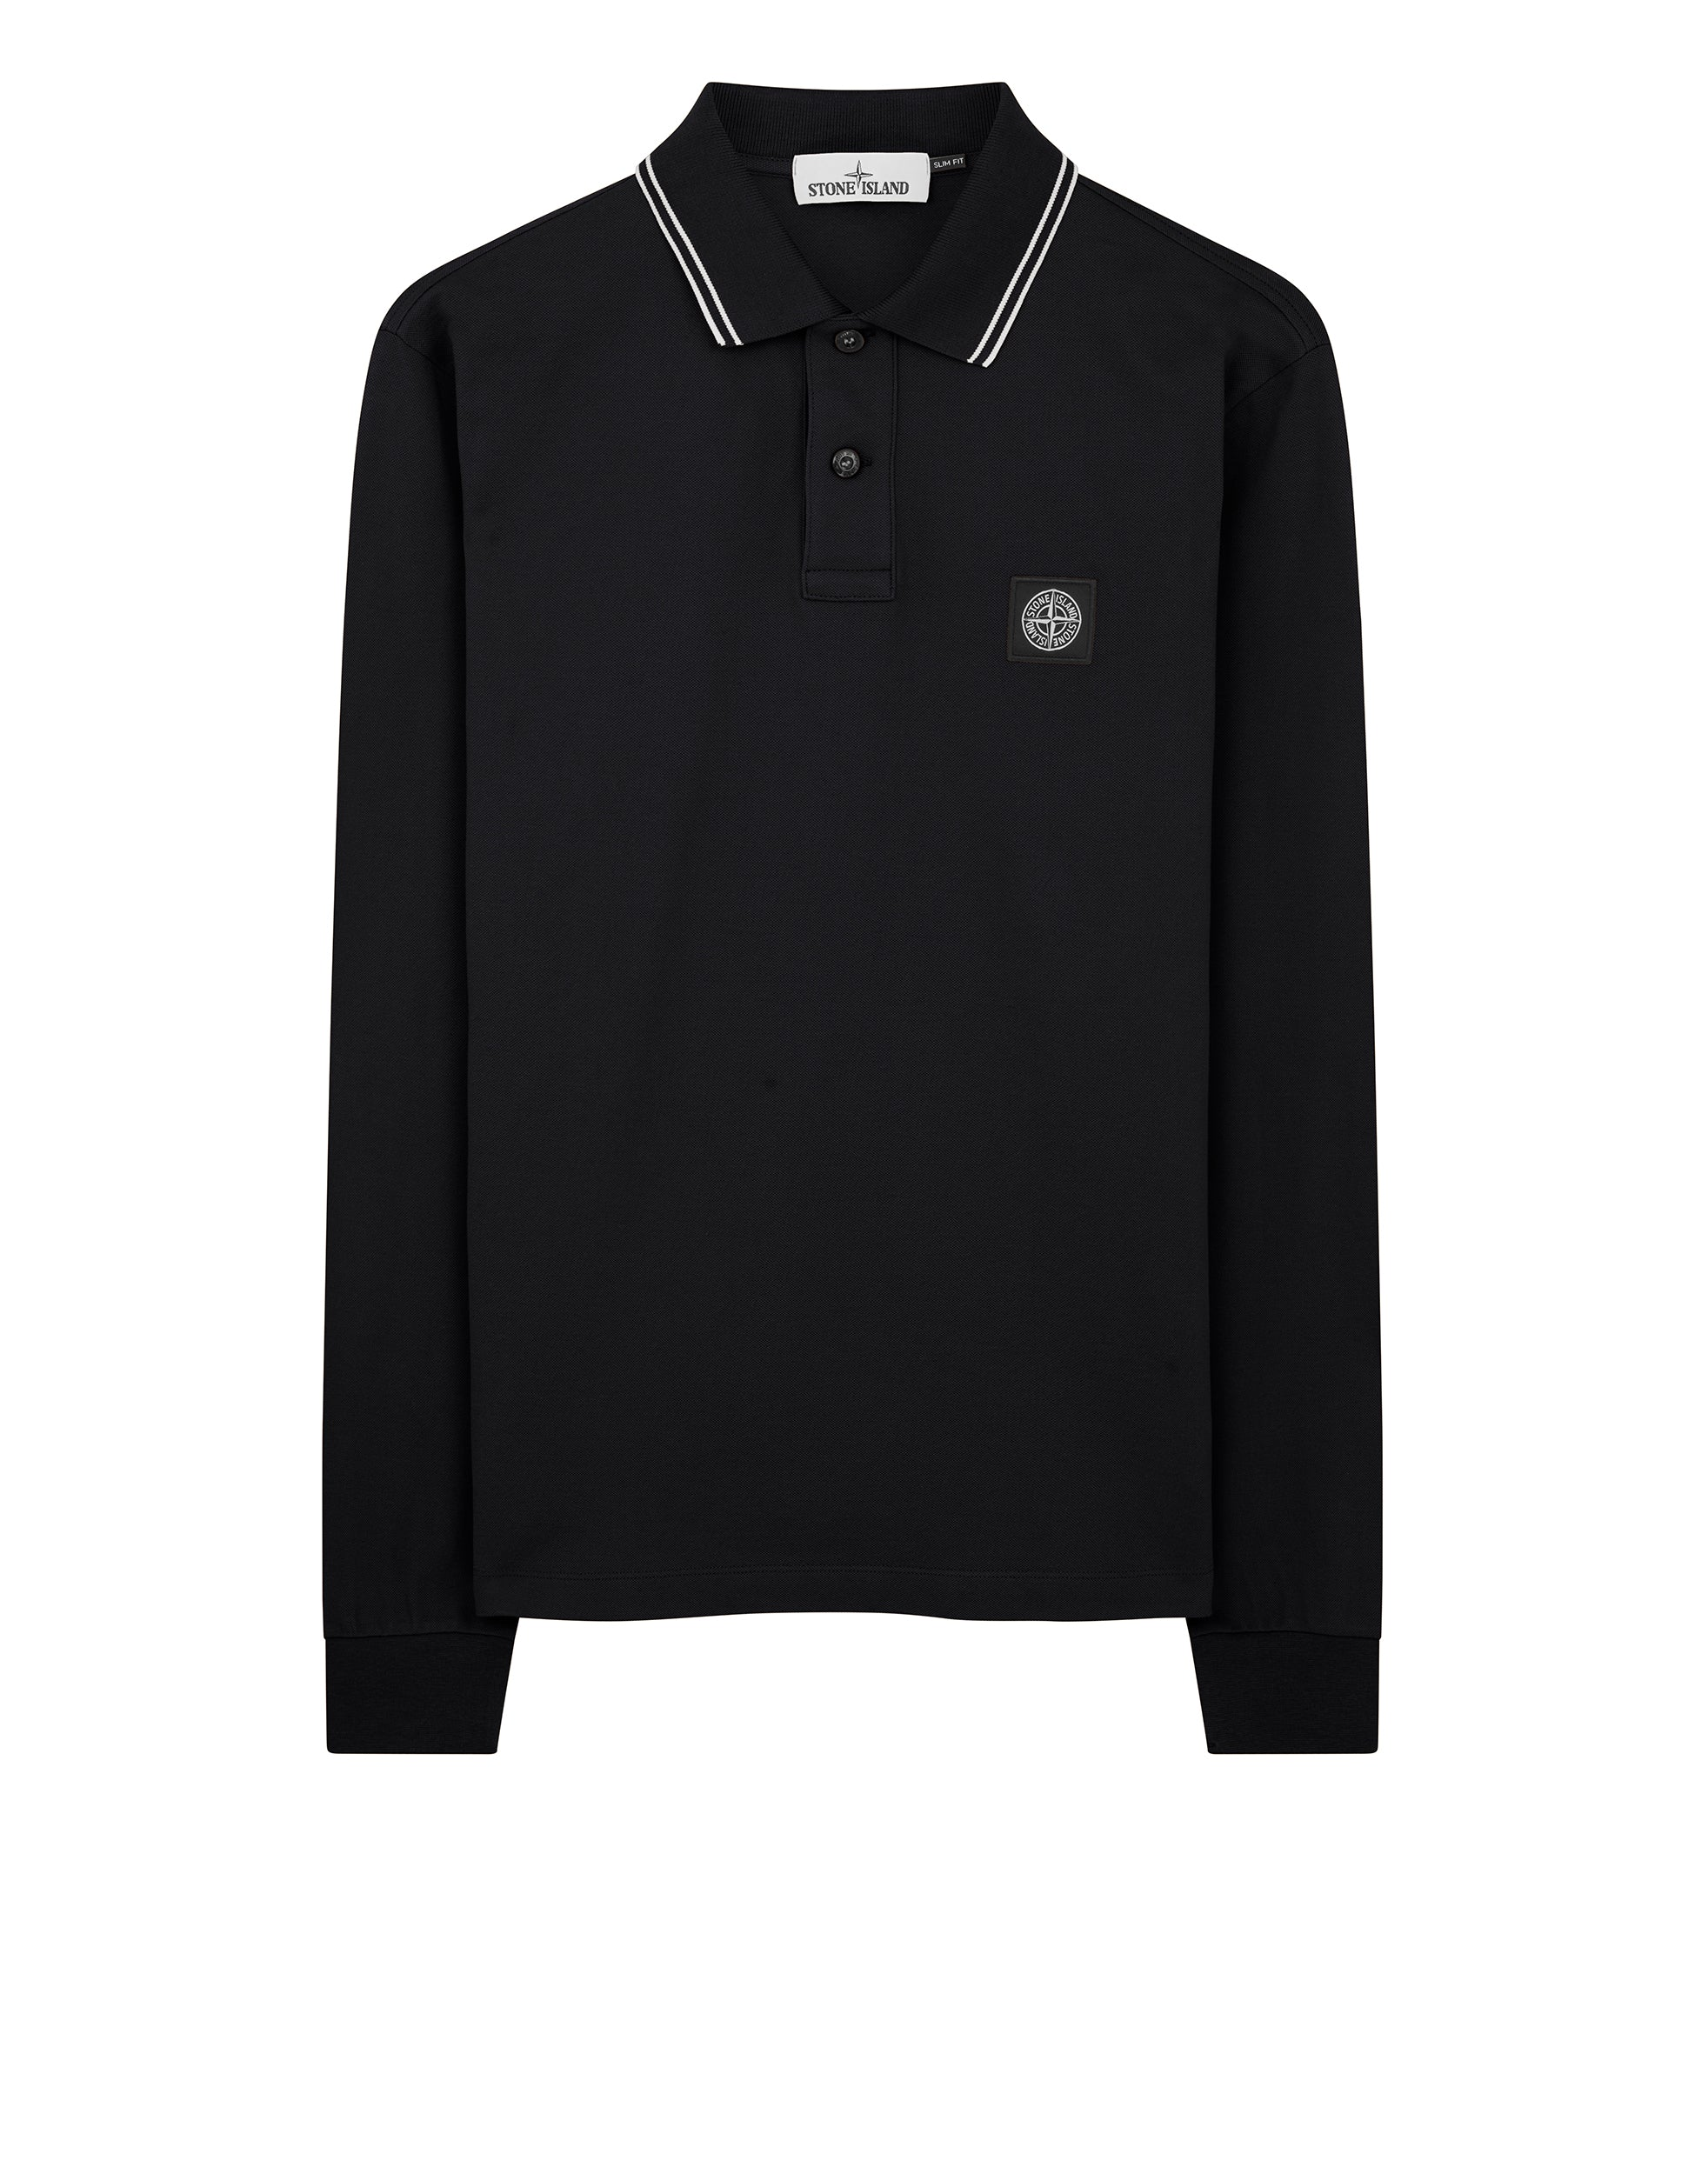 2Ss18 Long Sleeve Polo Shirt in Black